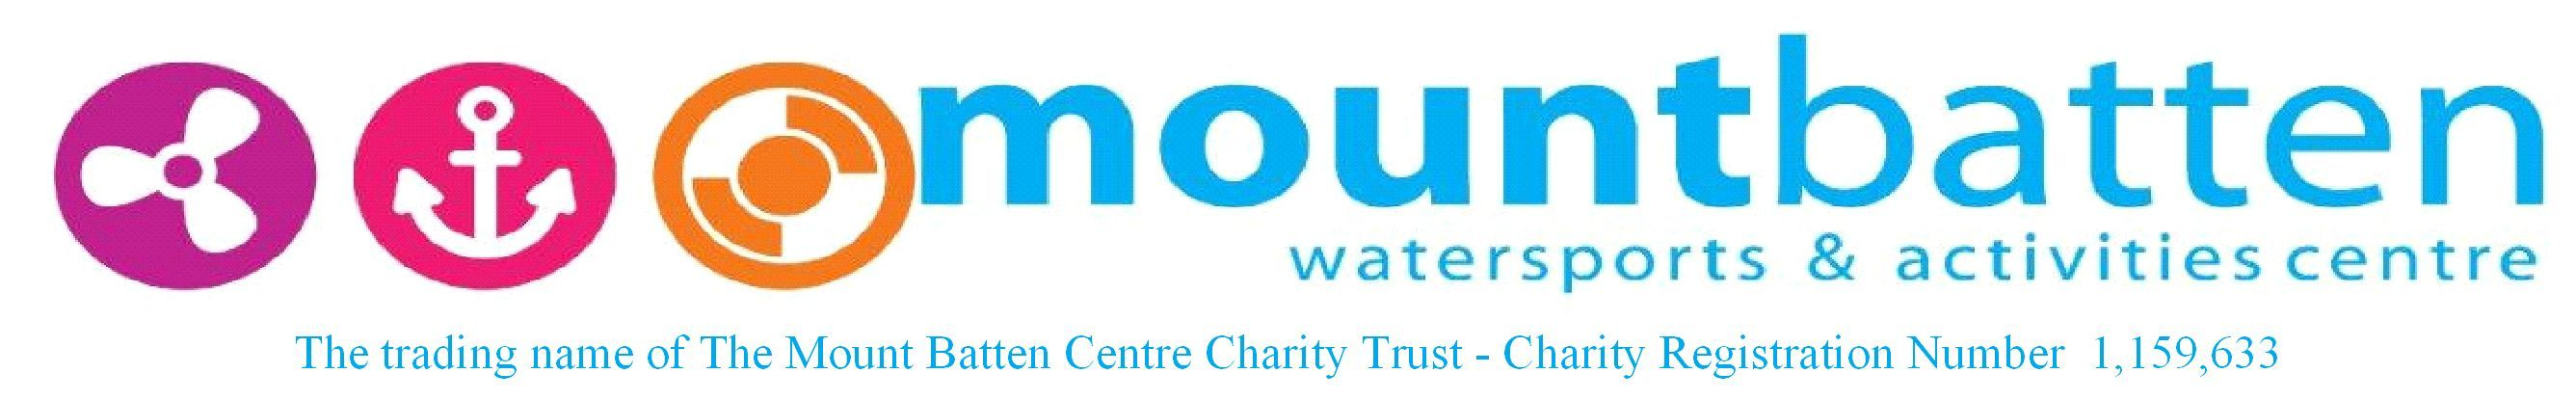 the Mount Batten Centre Charity Trust